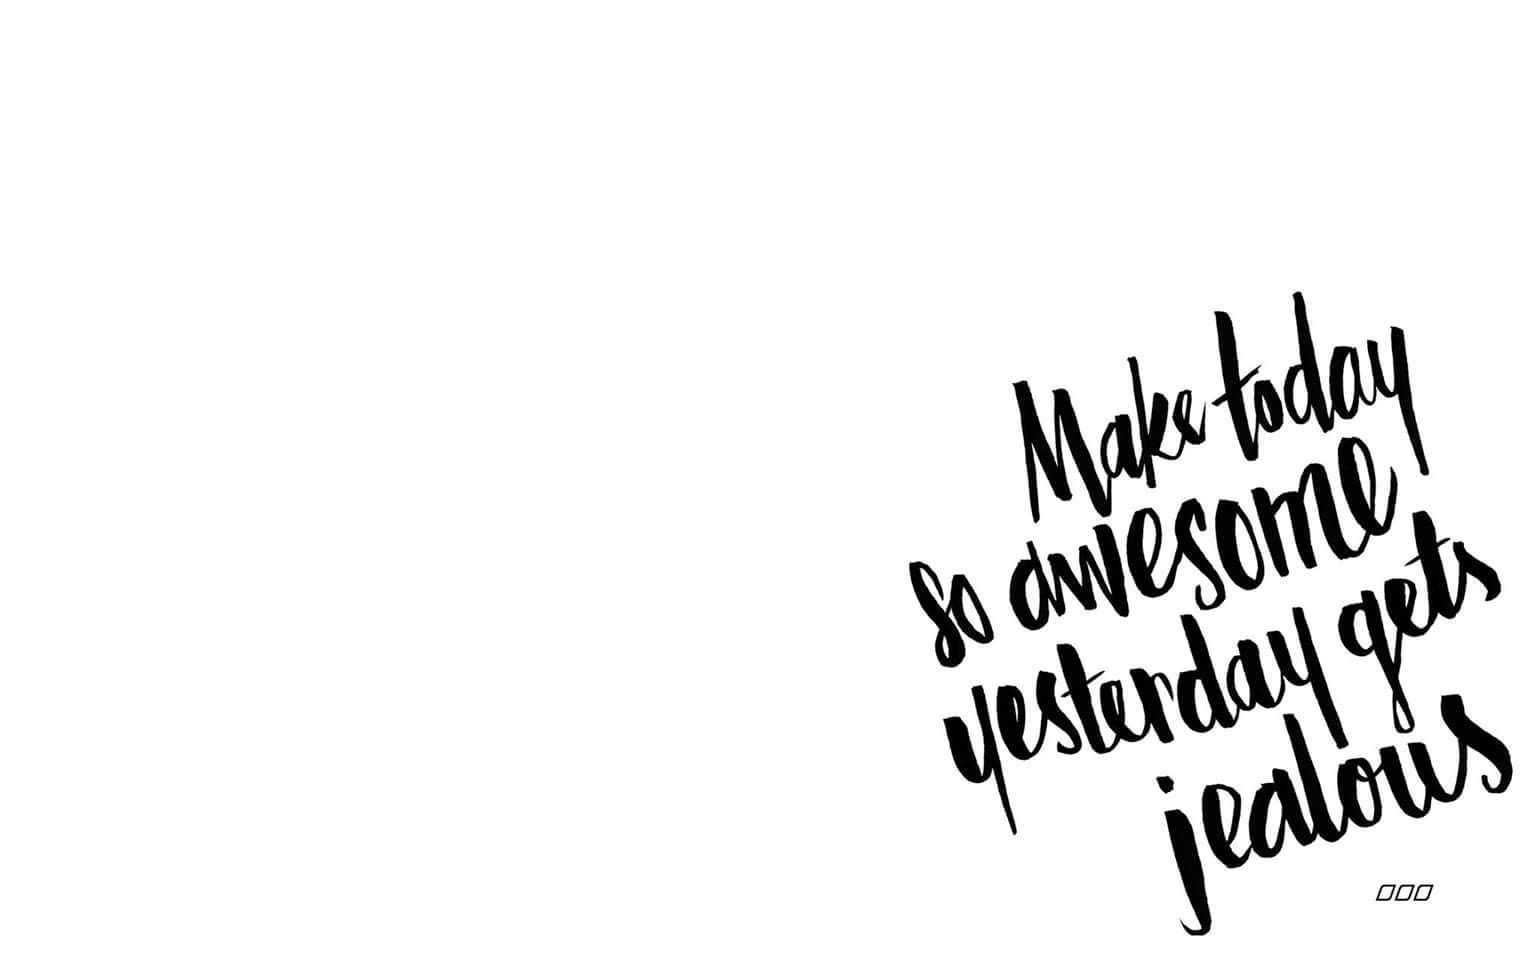 Pin By Scott Diana Thompson On Quotes To Live By Desktop Wallpapers Tumblr Inspirational Desktop Wallpaper Desktop Background Quote